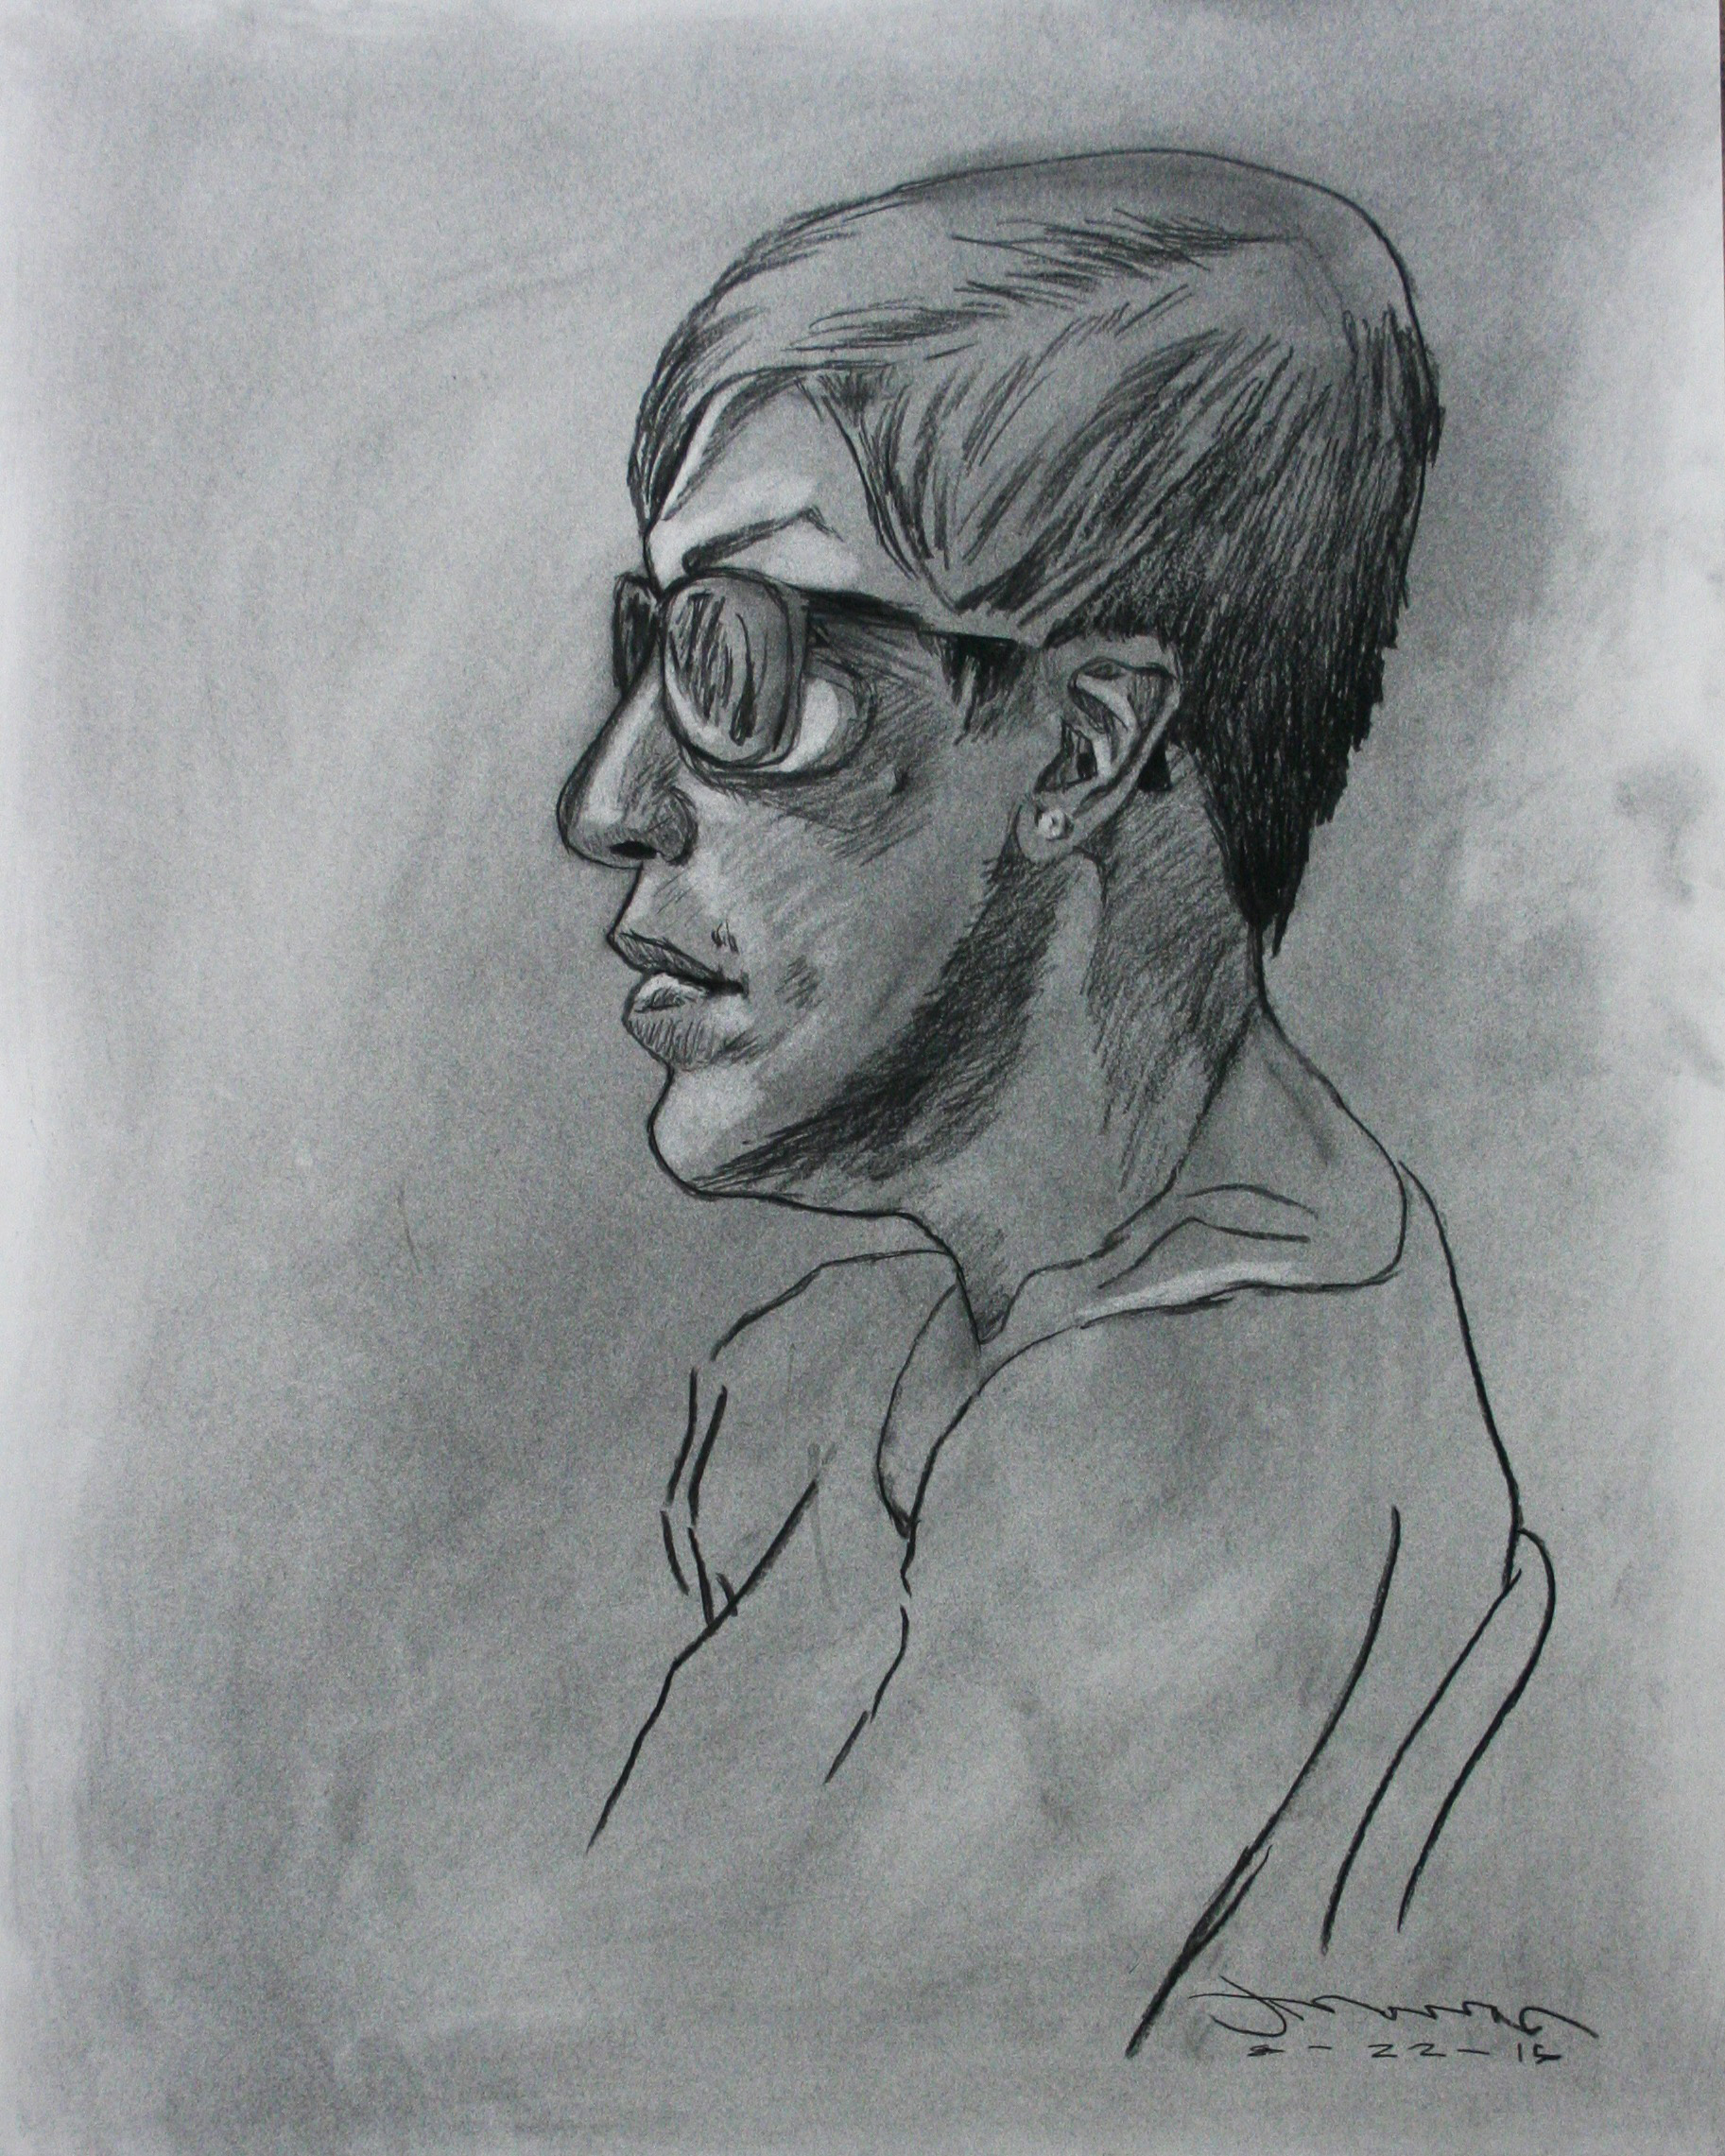 Jeanette Daphne Thomas did this half hour drawing.